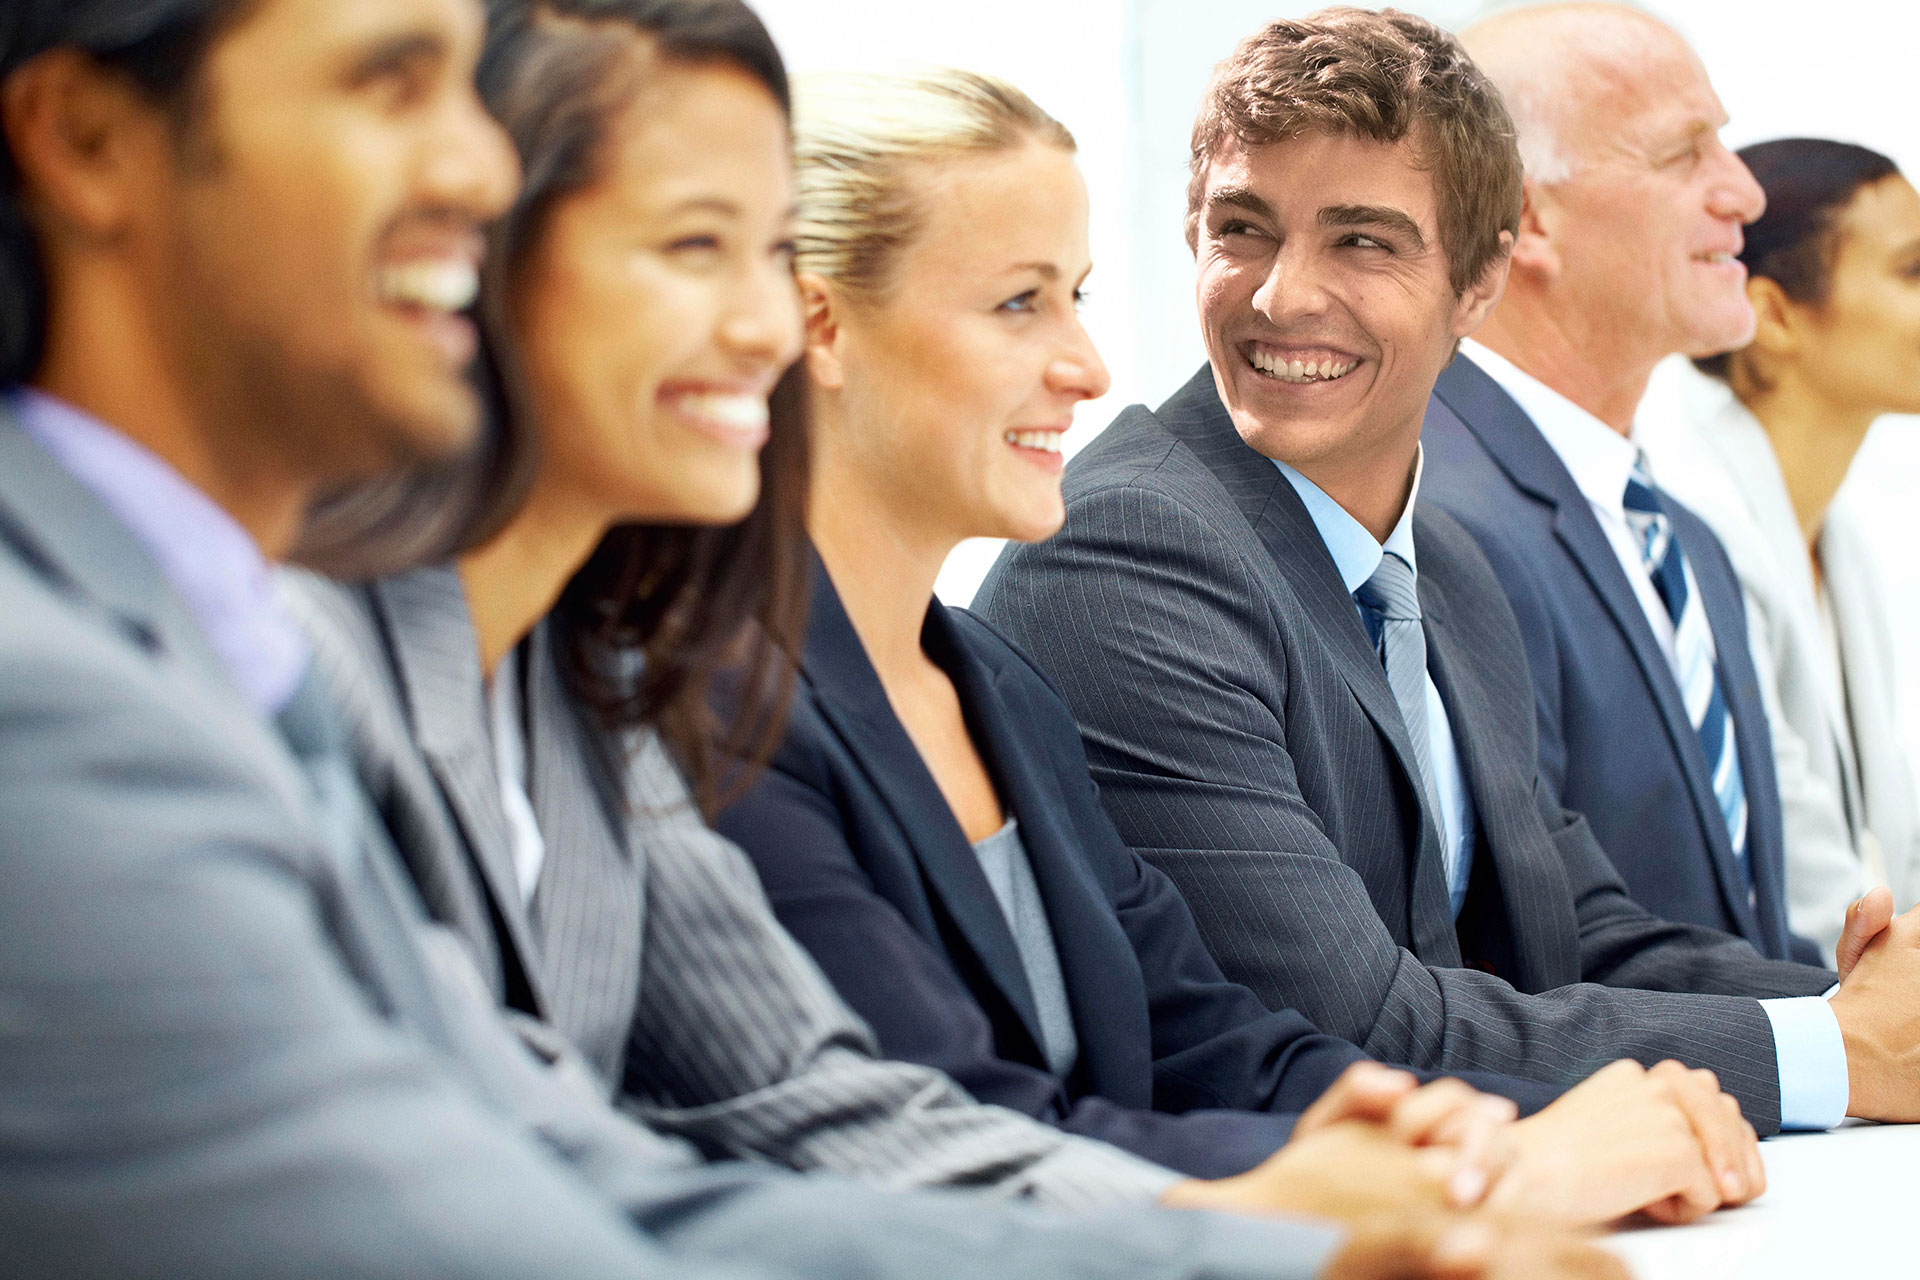 Stock Photos Unfinished Business 9  Nerd Reactor